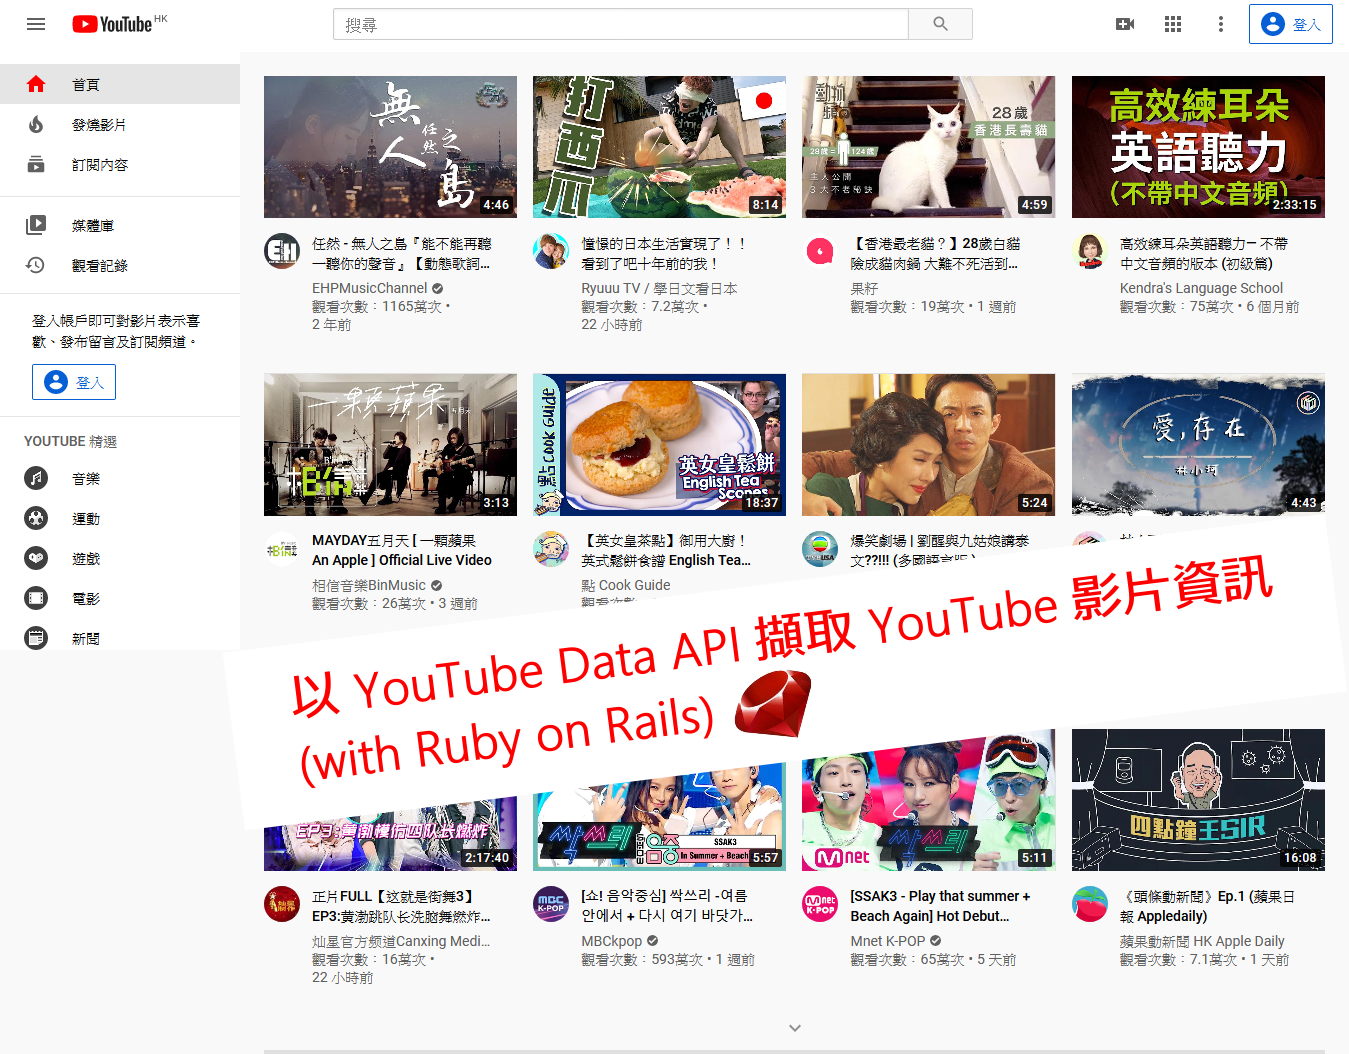 [教學] 以 YouTube Data API 擷取 YouTube 影片資訊 [Ruby on Rails]